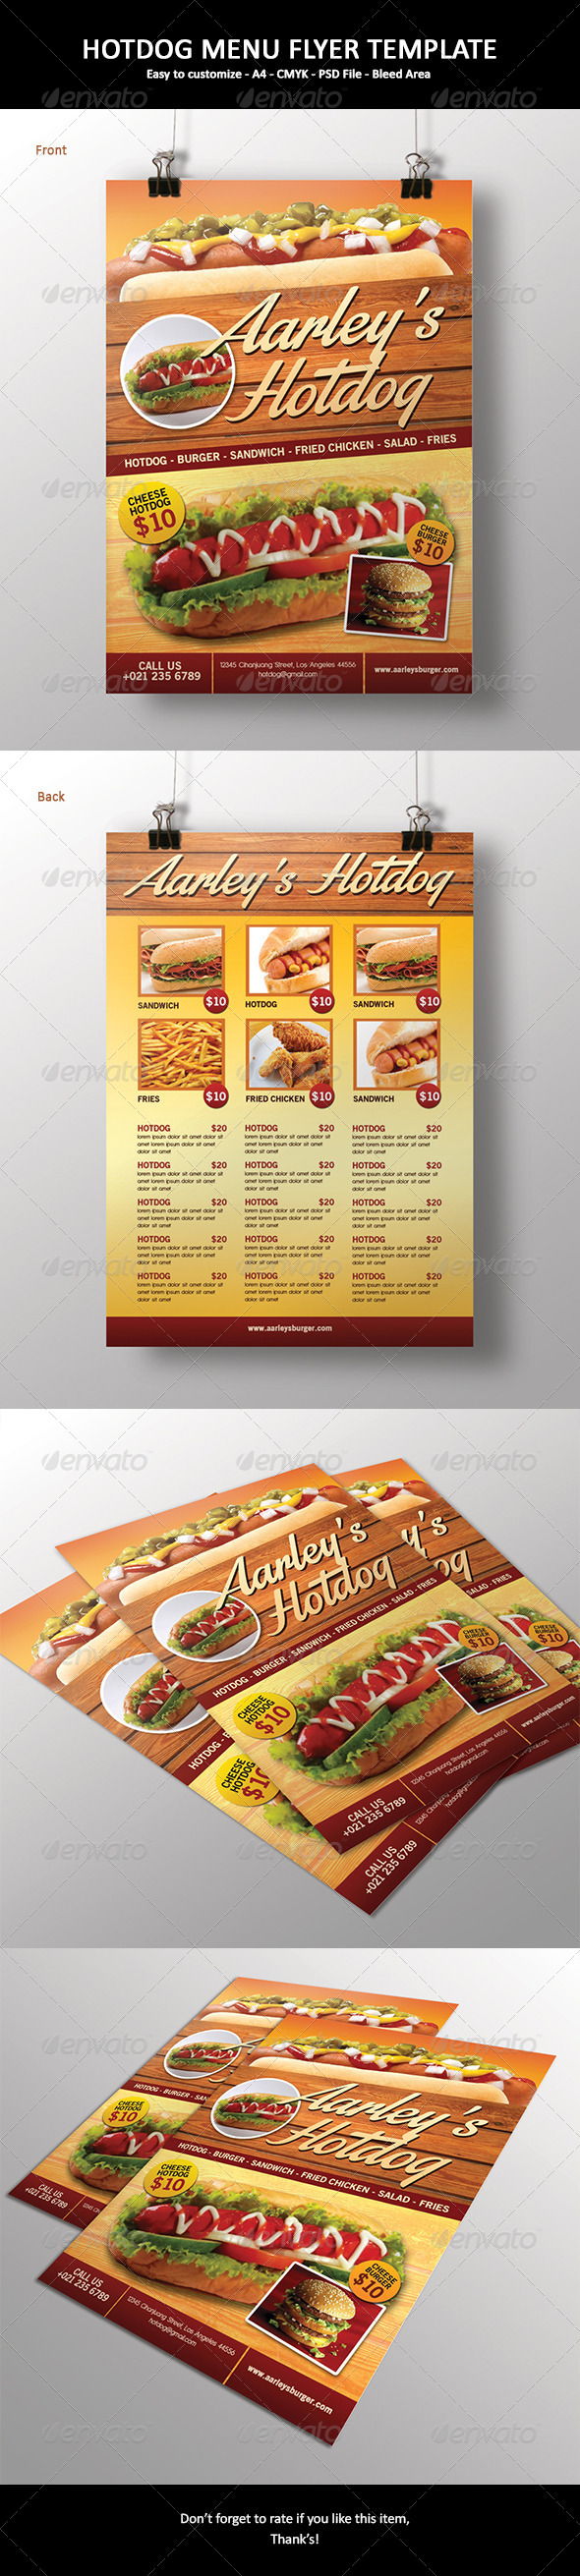 GraphicRiver Hotdog Menu Flyer 6529533